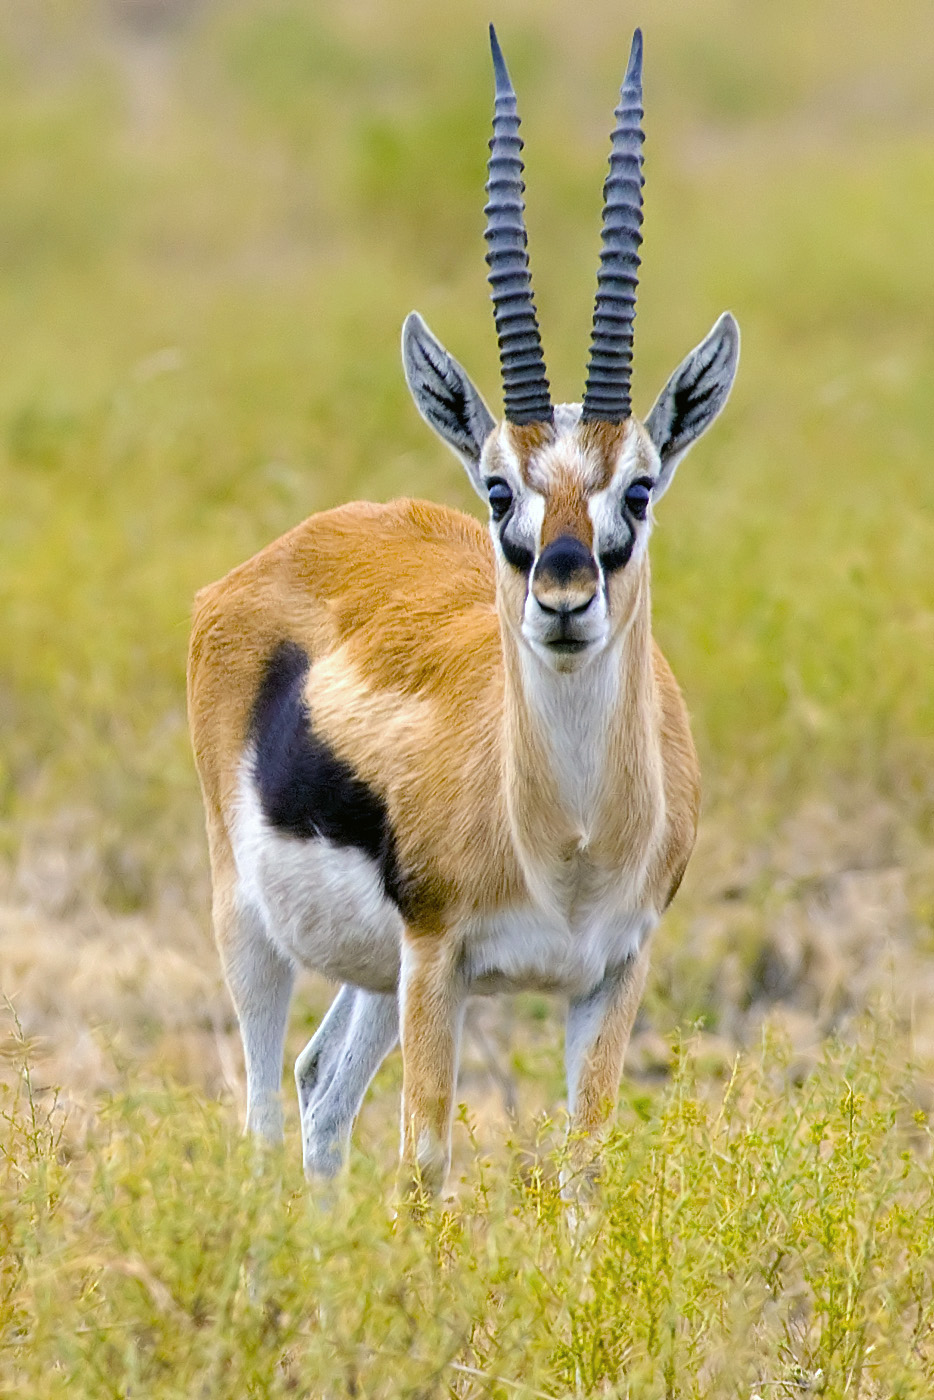 The main technical characteristics of Gazelle